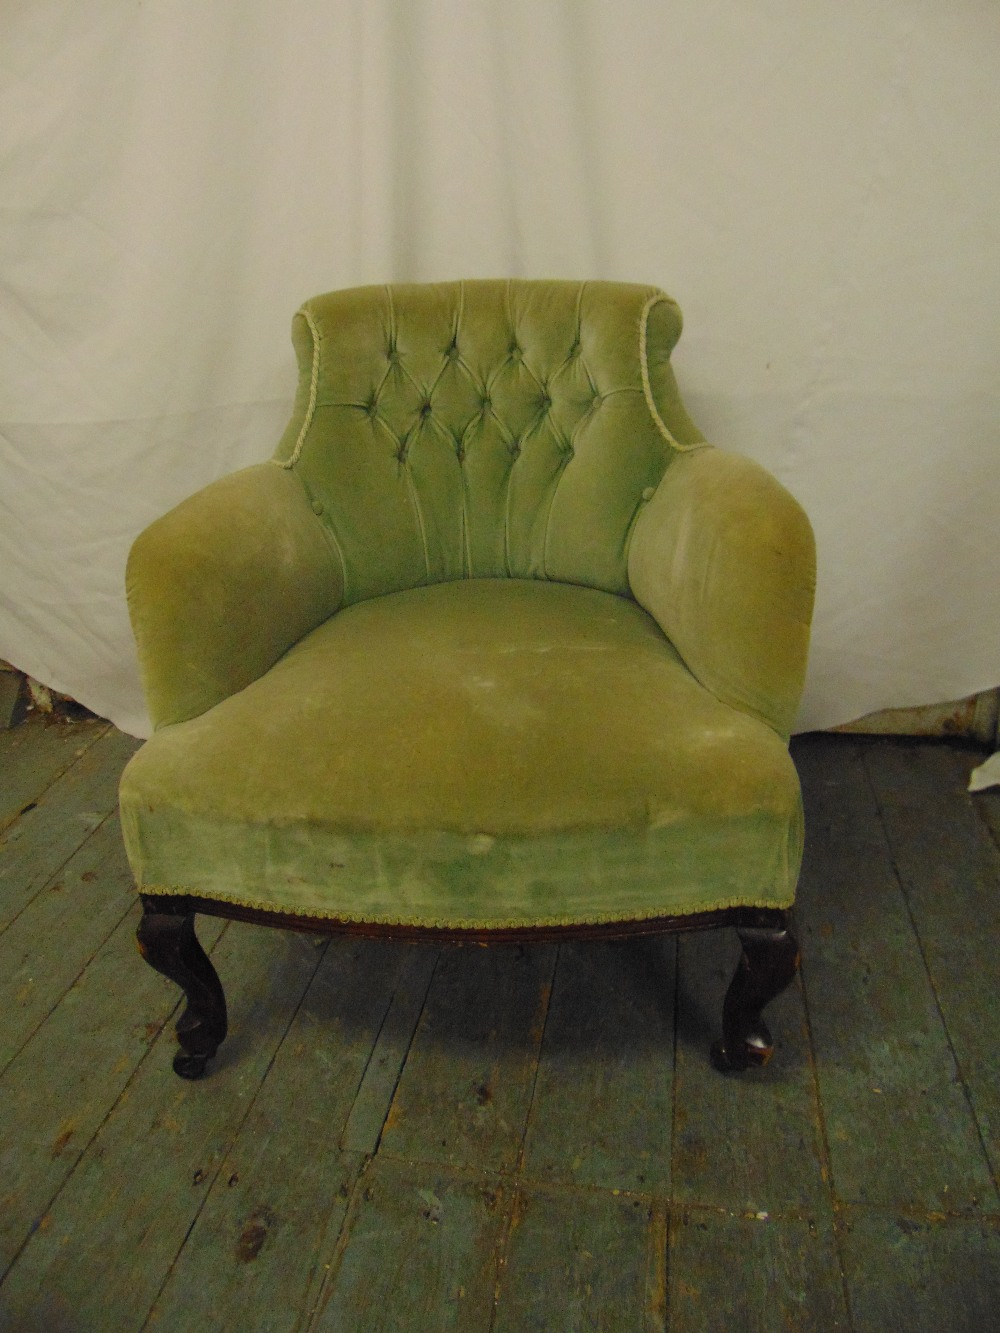 Lot 40 - An early 20th century mahogany upholstered tub chair on scroll legs